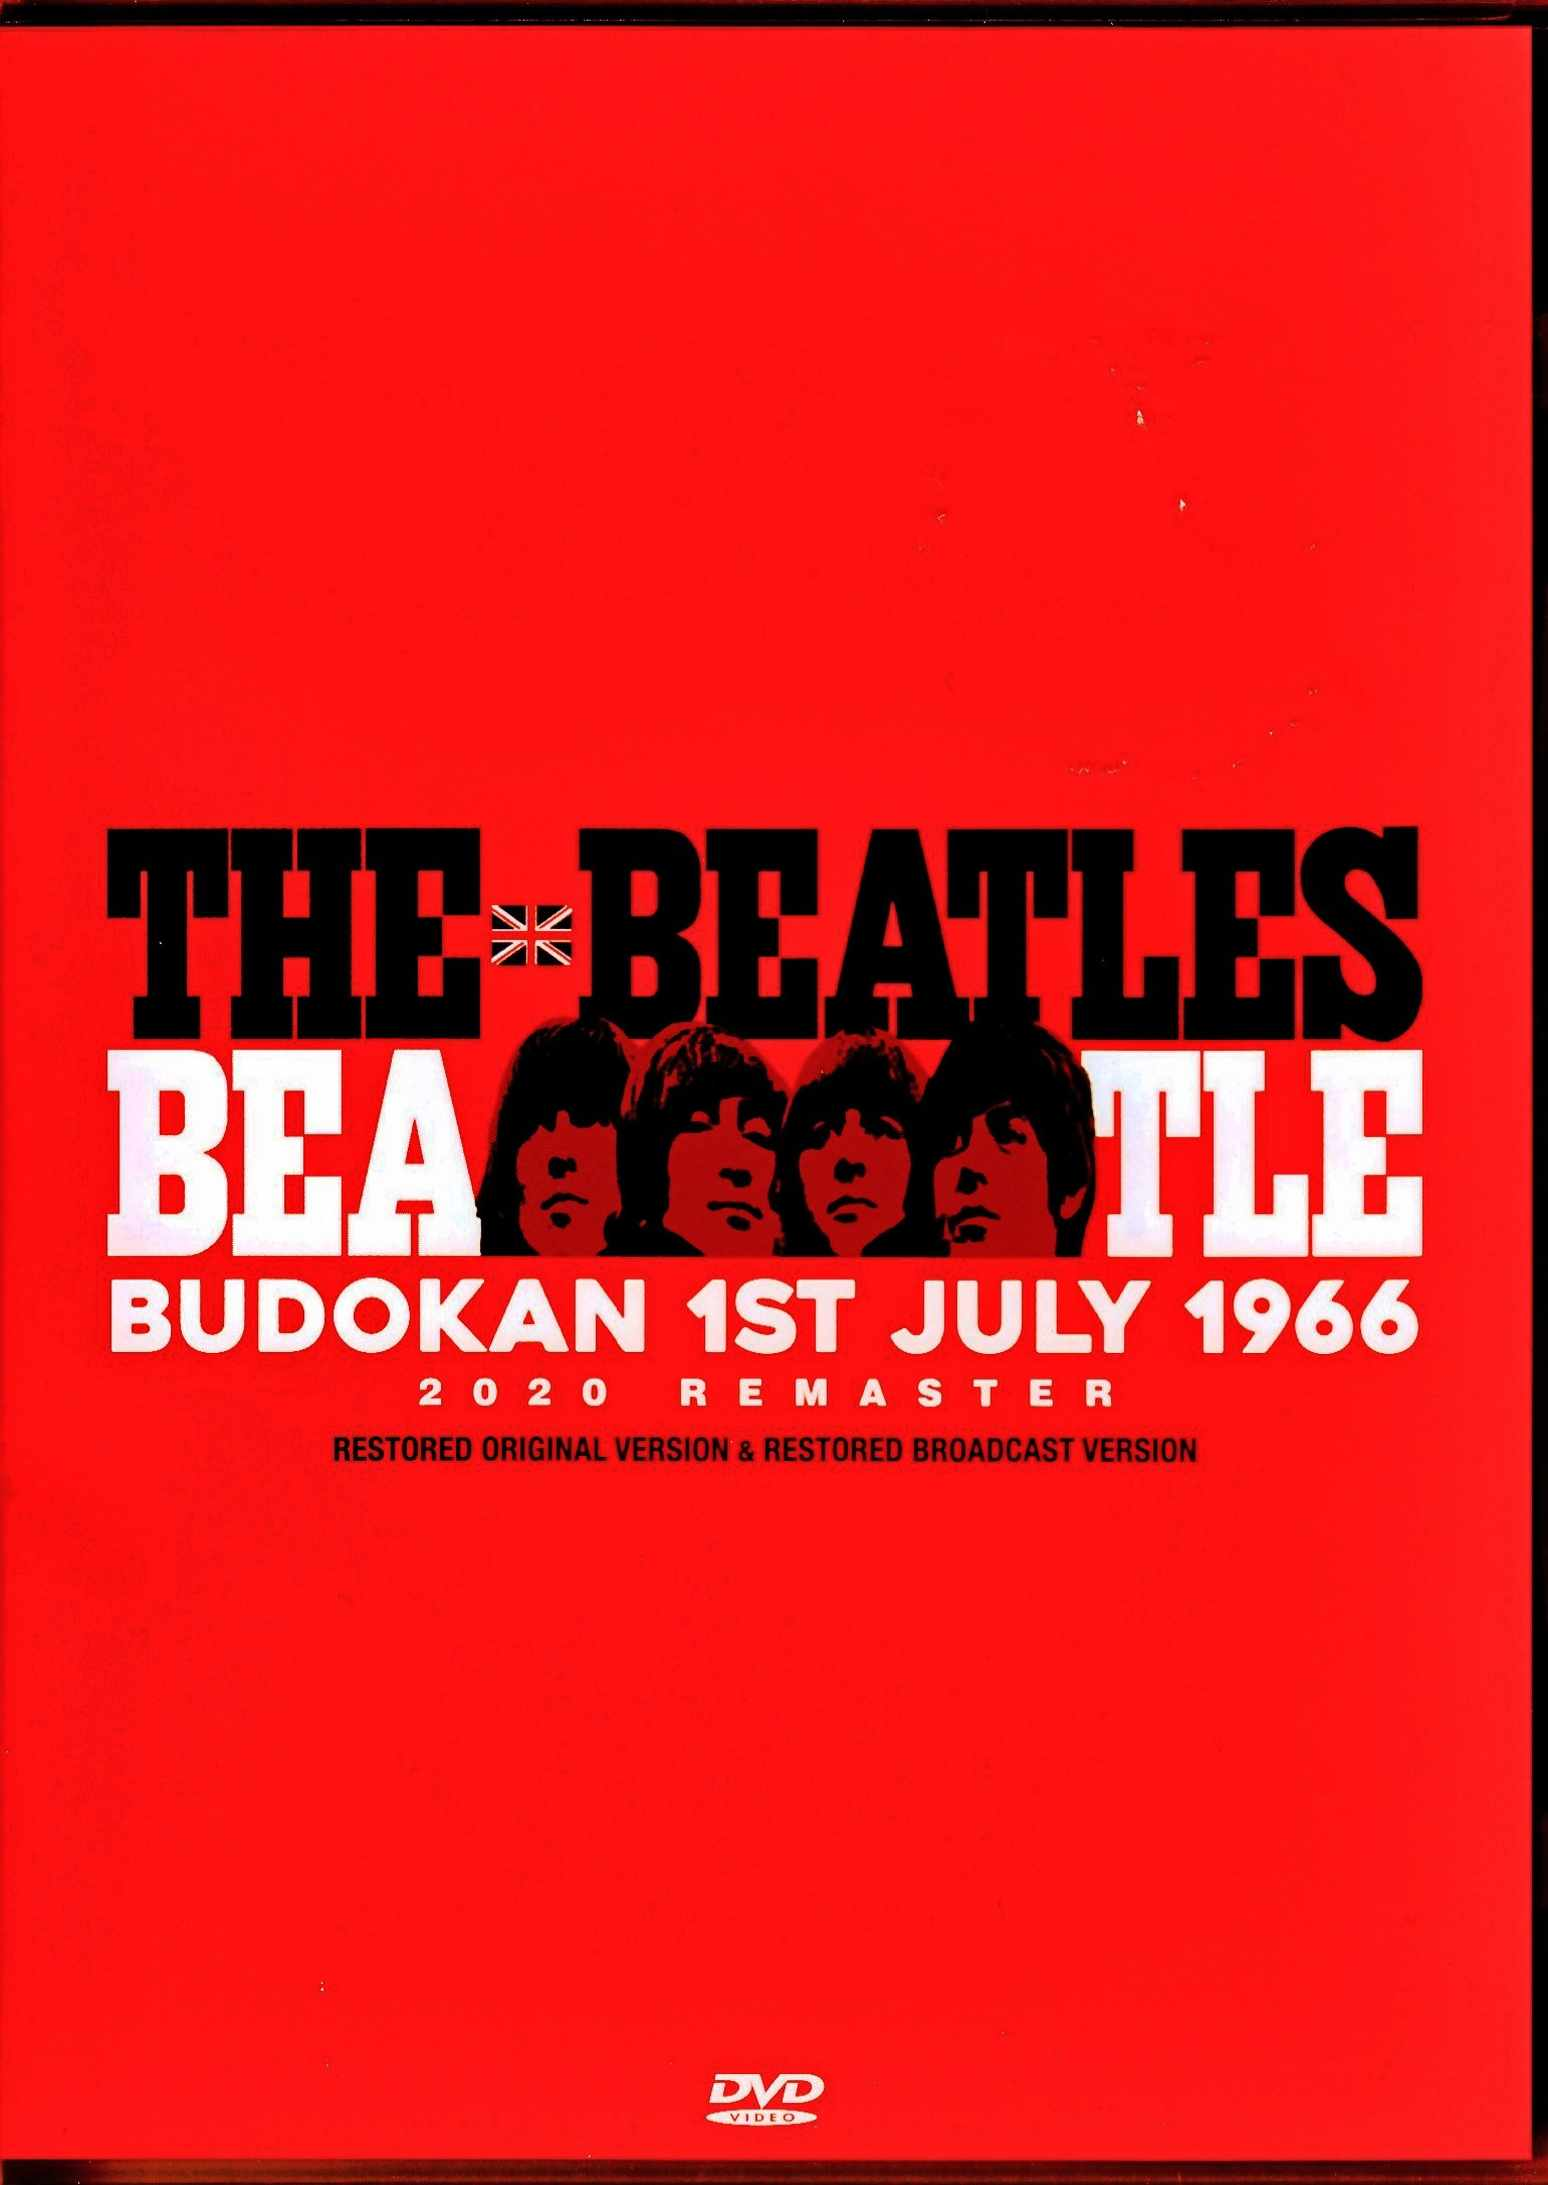 Beatles ビートルズ/Tokyo,Japan 7.1.1966 Afternoon Show Restored & more